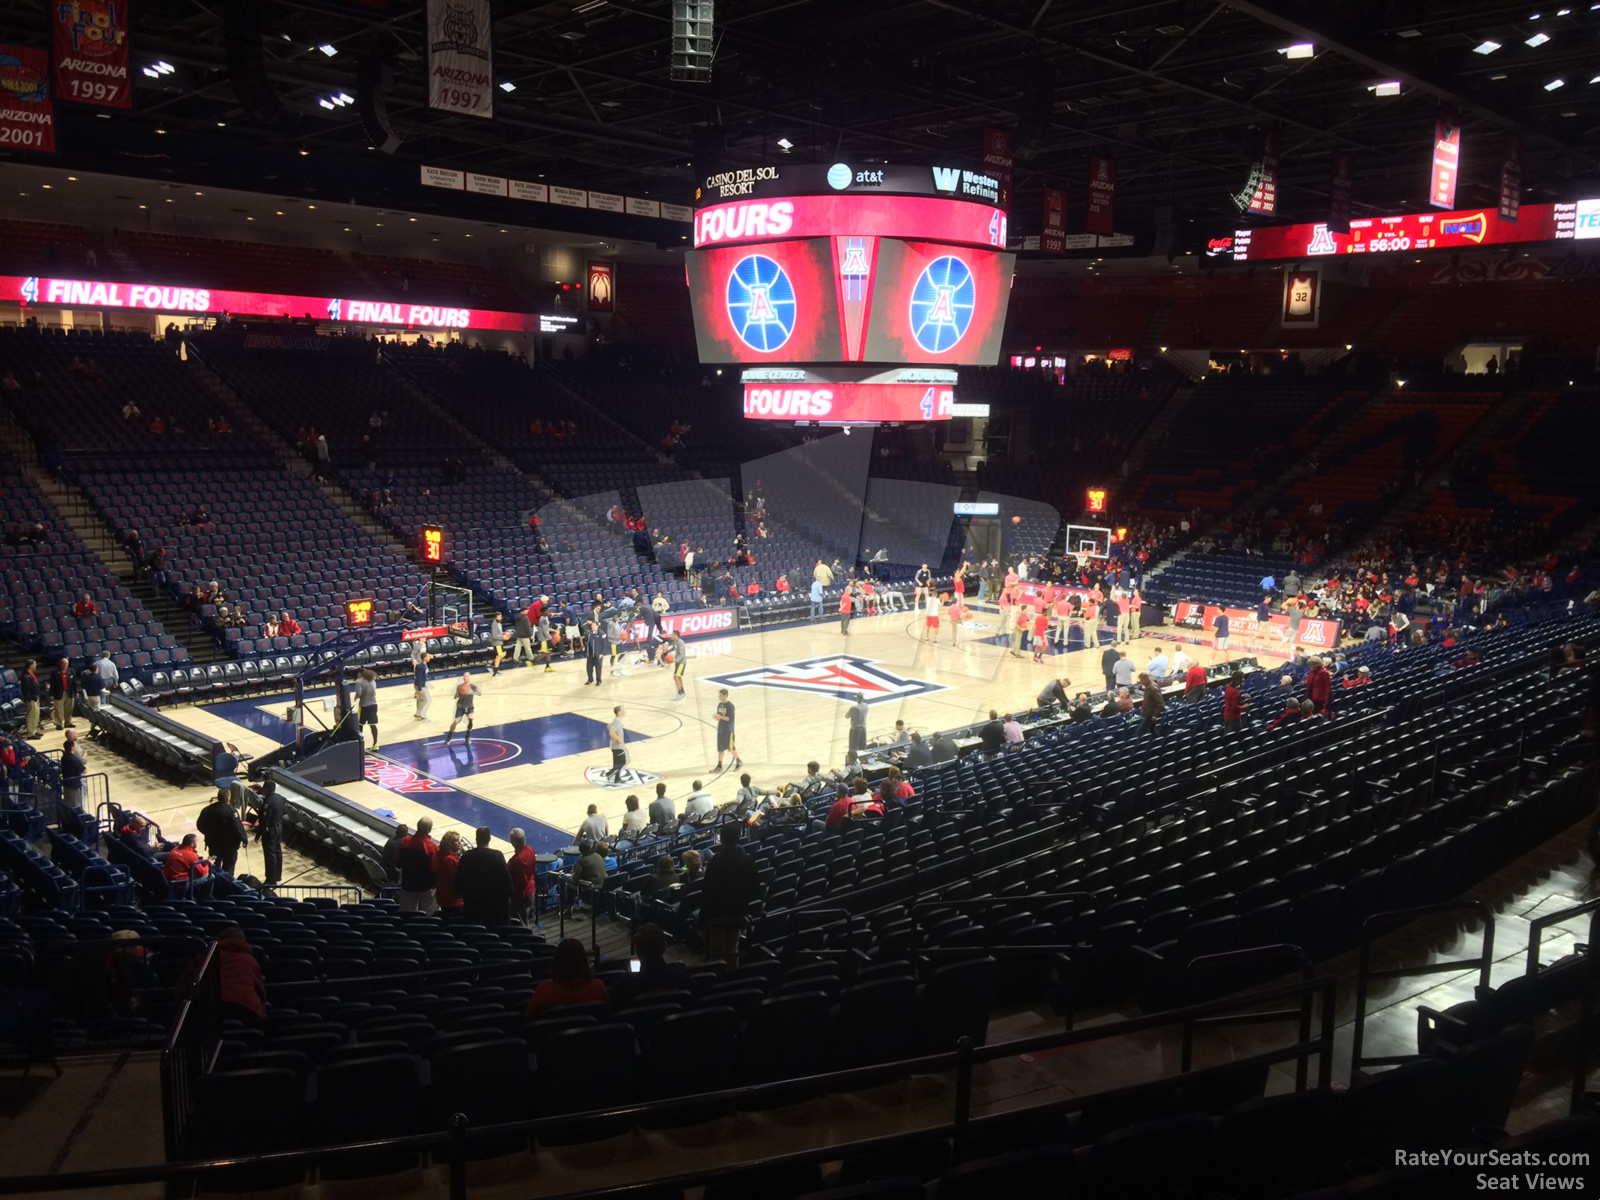 Section 6 seat view